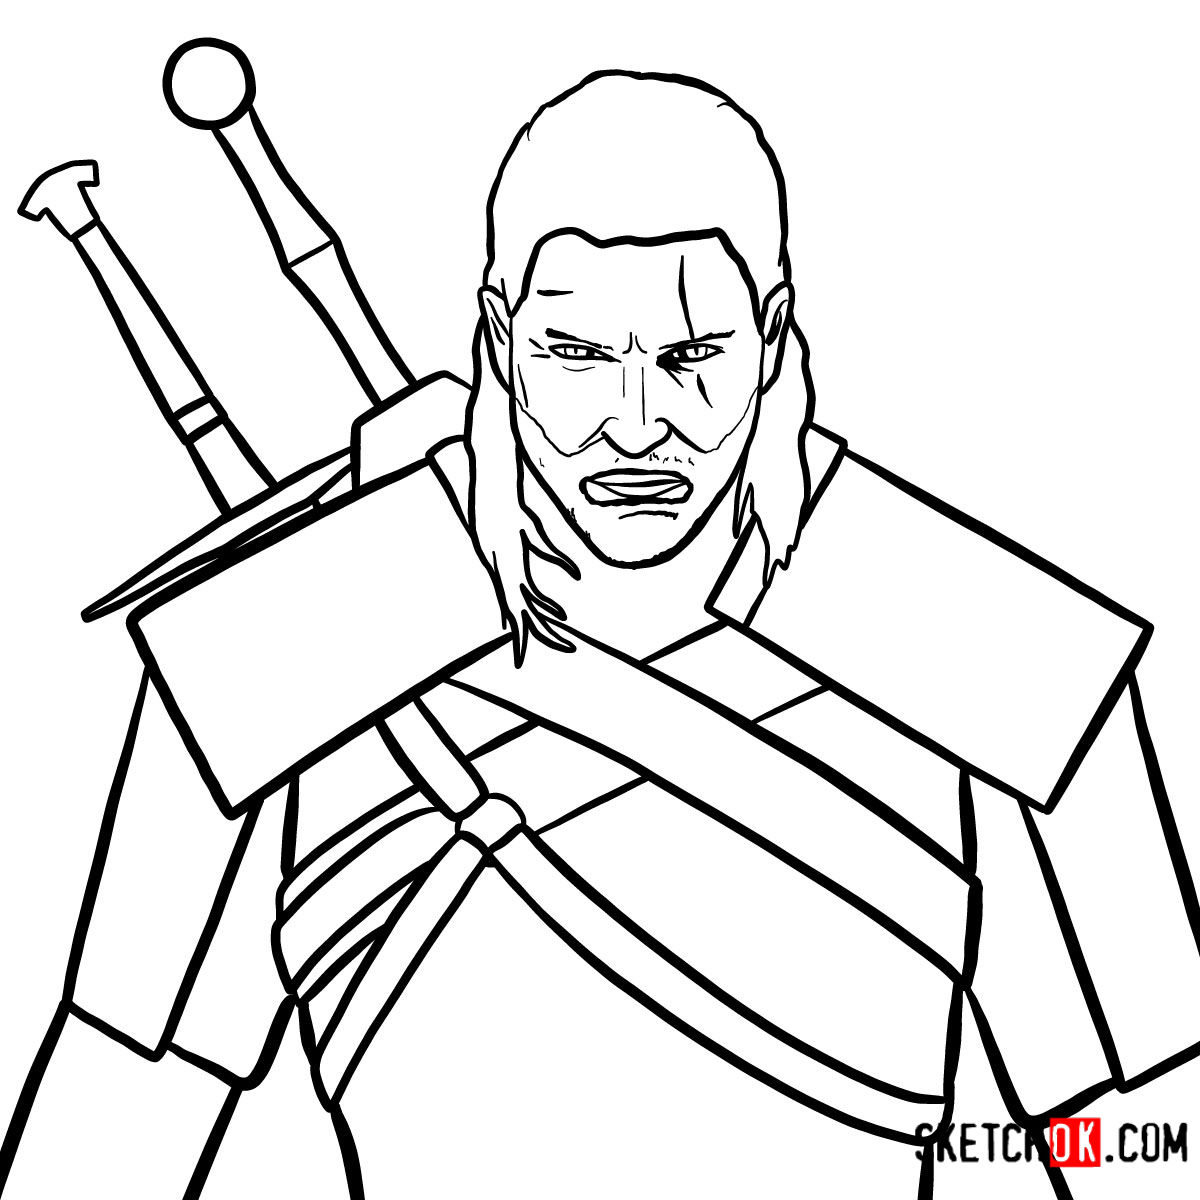 How to draw Geralt of Rivia | The Witcher